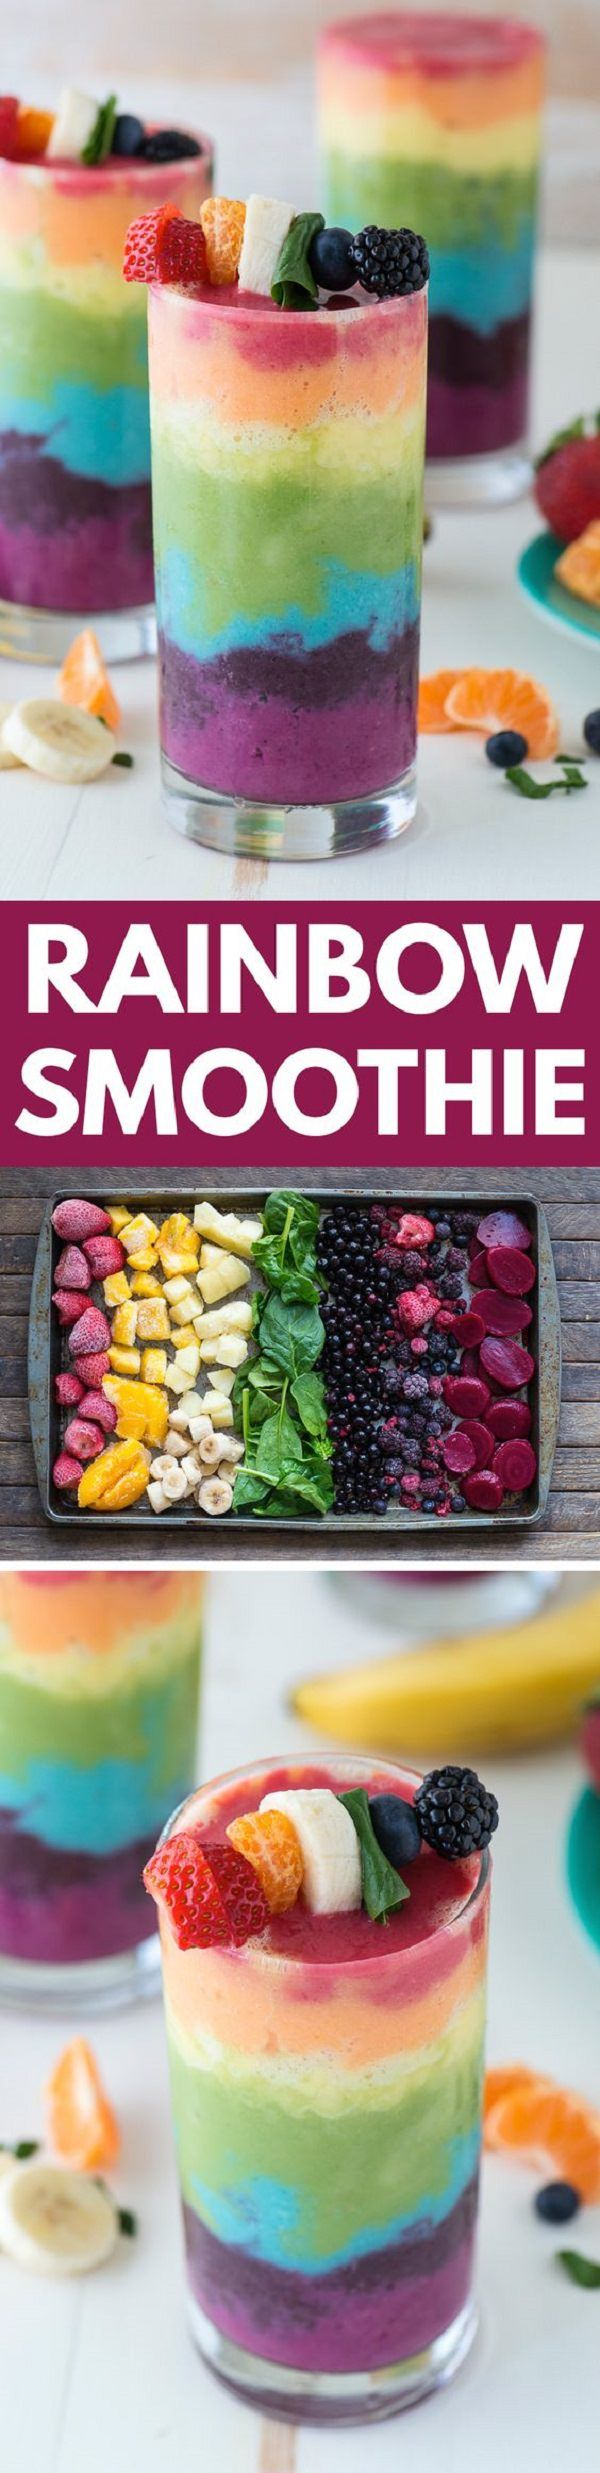 Check out the smoothie recipes that are not only delicious in taste but healthy too. You're going to love these!